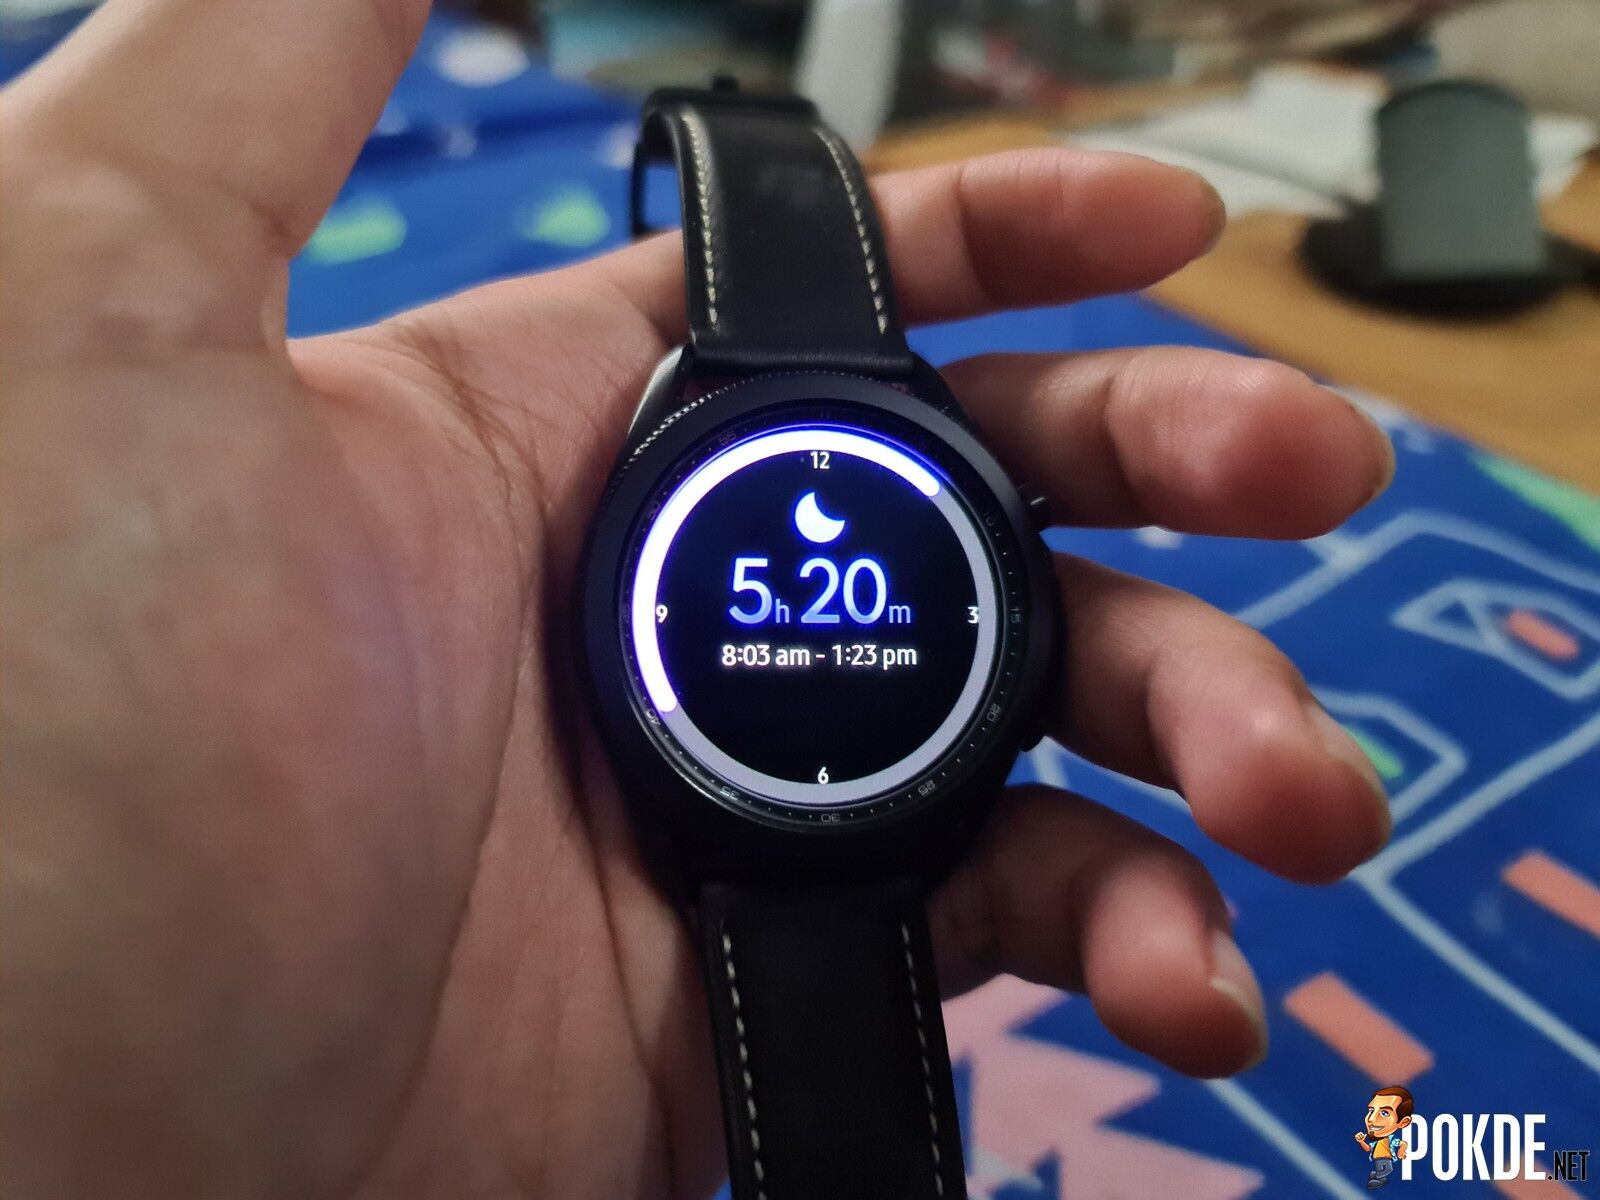 Samsung Galaxy Watch 3 Review - Classy, Feature-packed Smartwatch 30